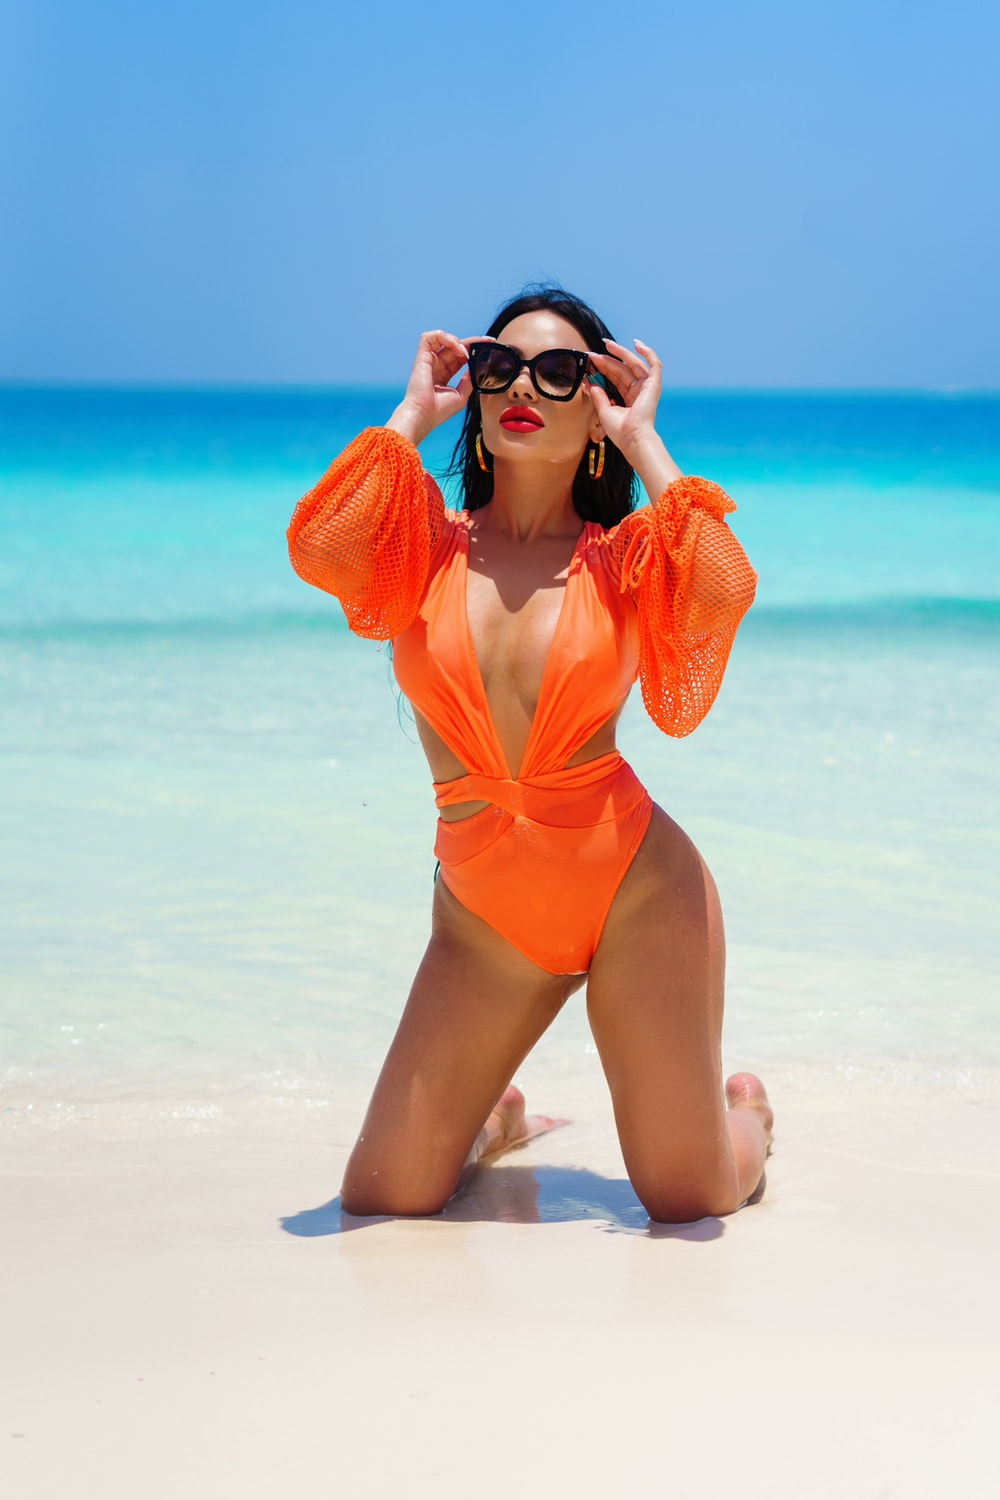 woman in orange one piece swimsuit sitting on beach shore during daytime